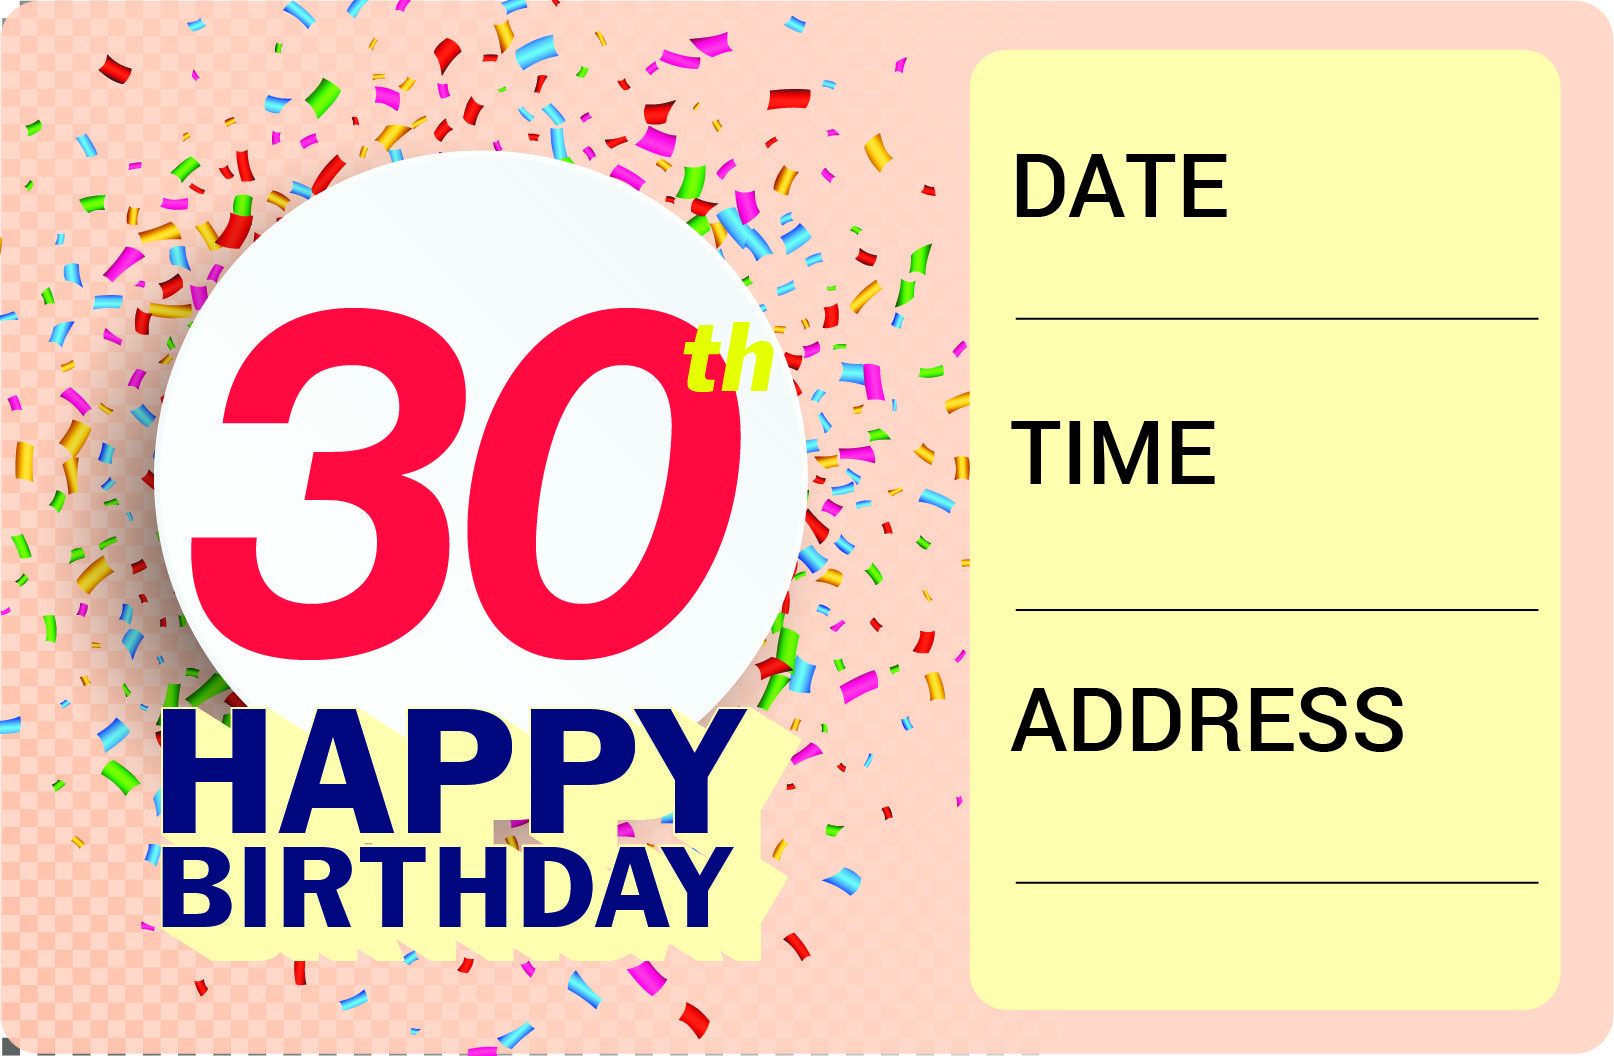 Get FREE Printable 30th Birthday Invitation Template | FREE ...